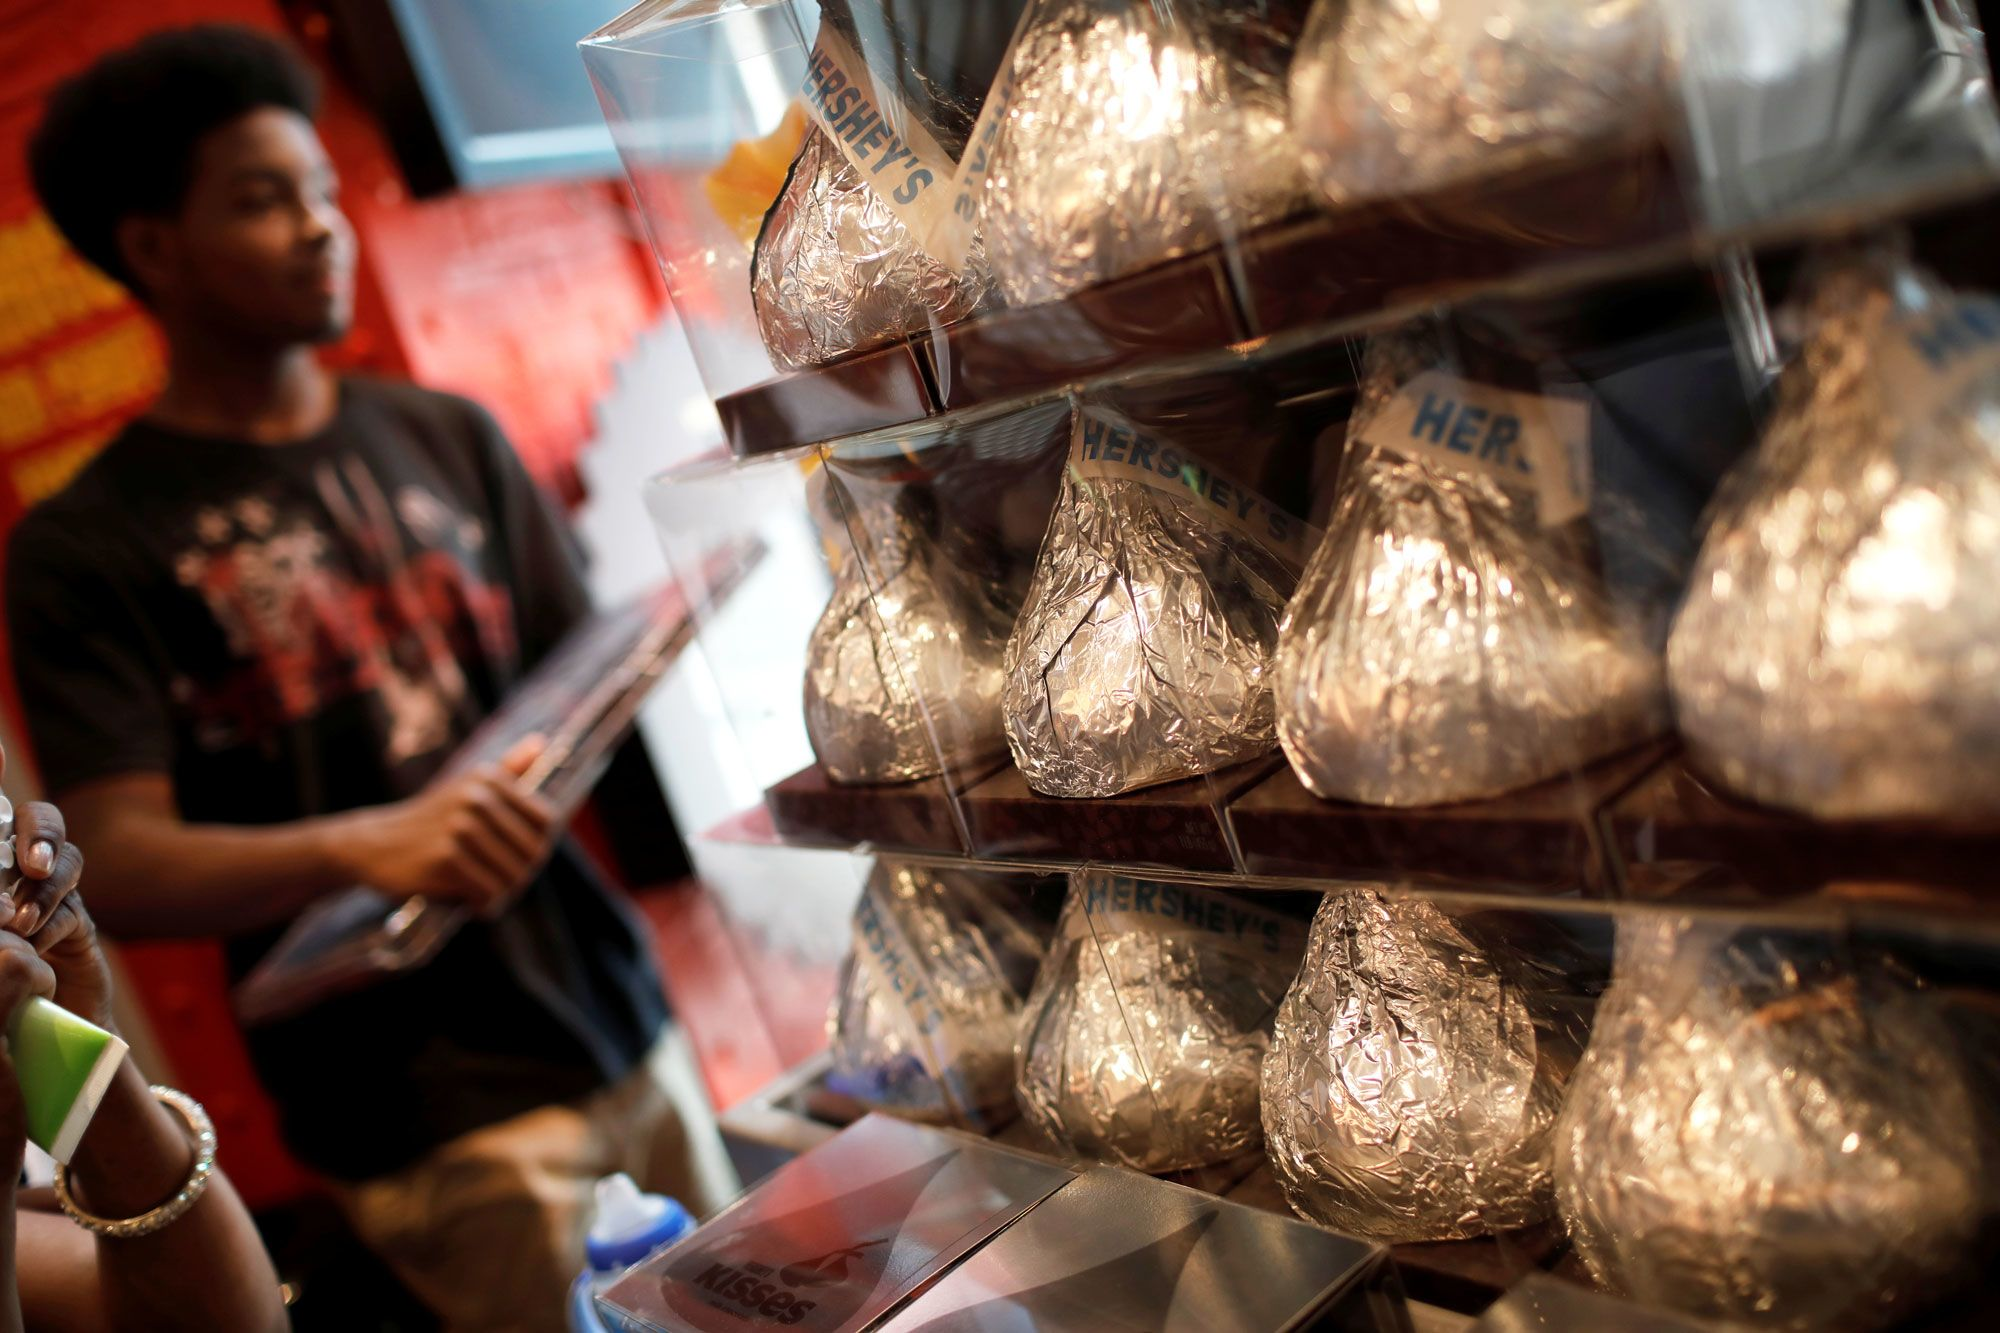 Hershey's turnaround came at the right time